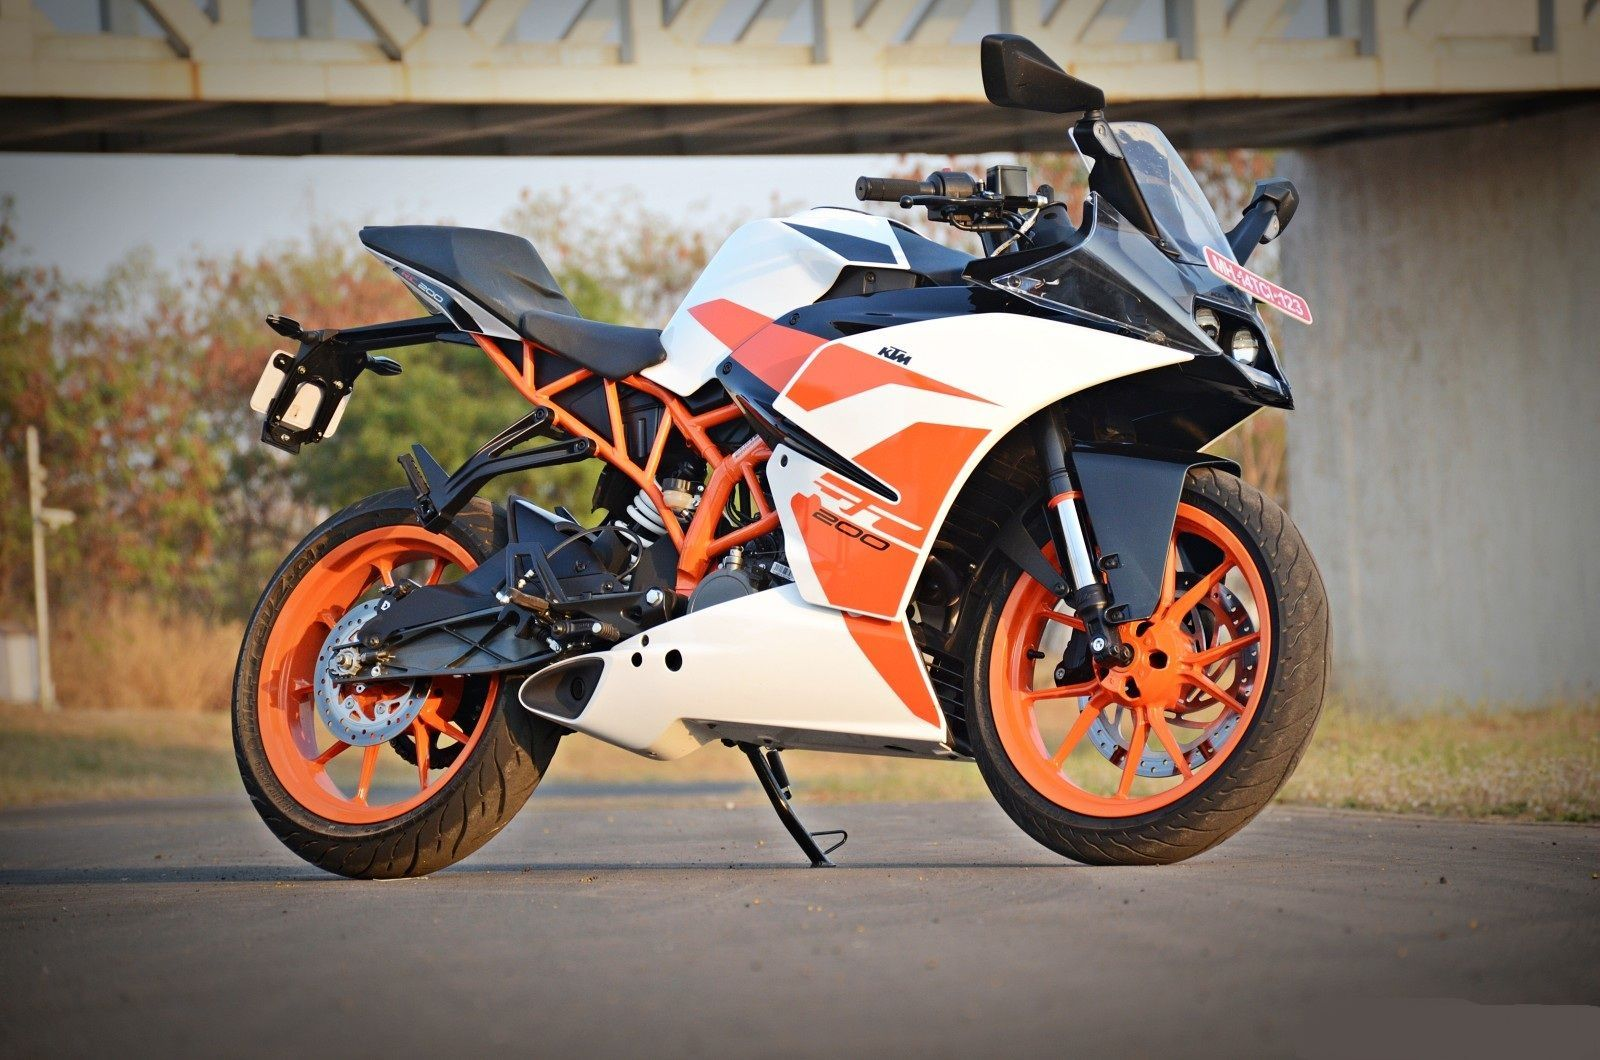 Ktm Rc 200 Wallpapers Top Free Ktm Rc 200 Backgrounds Wallpaperaccess